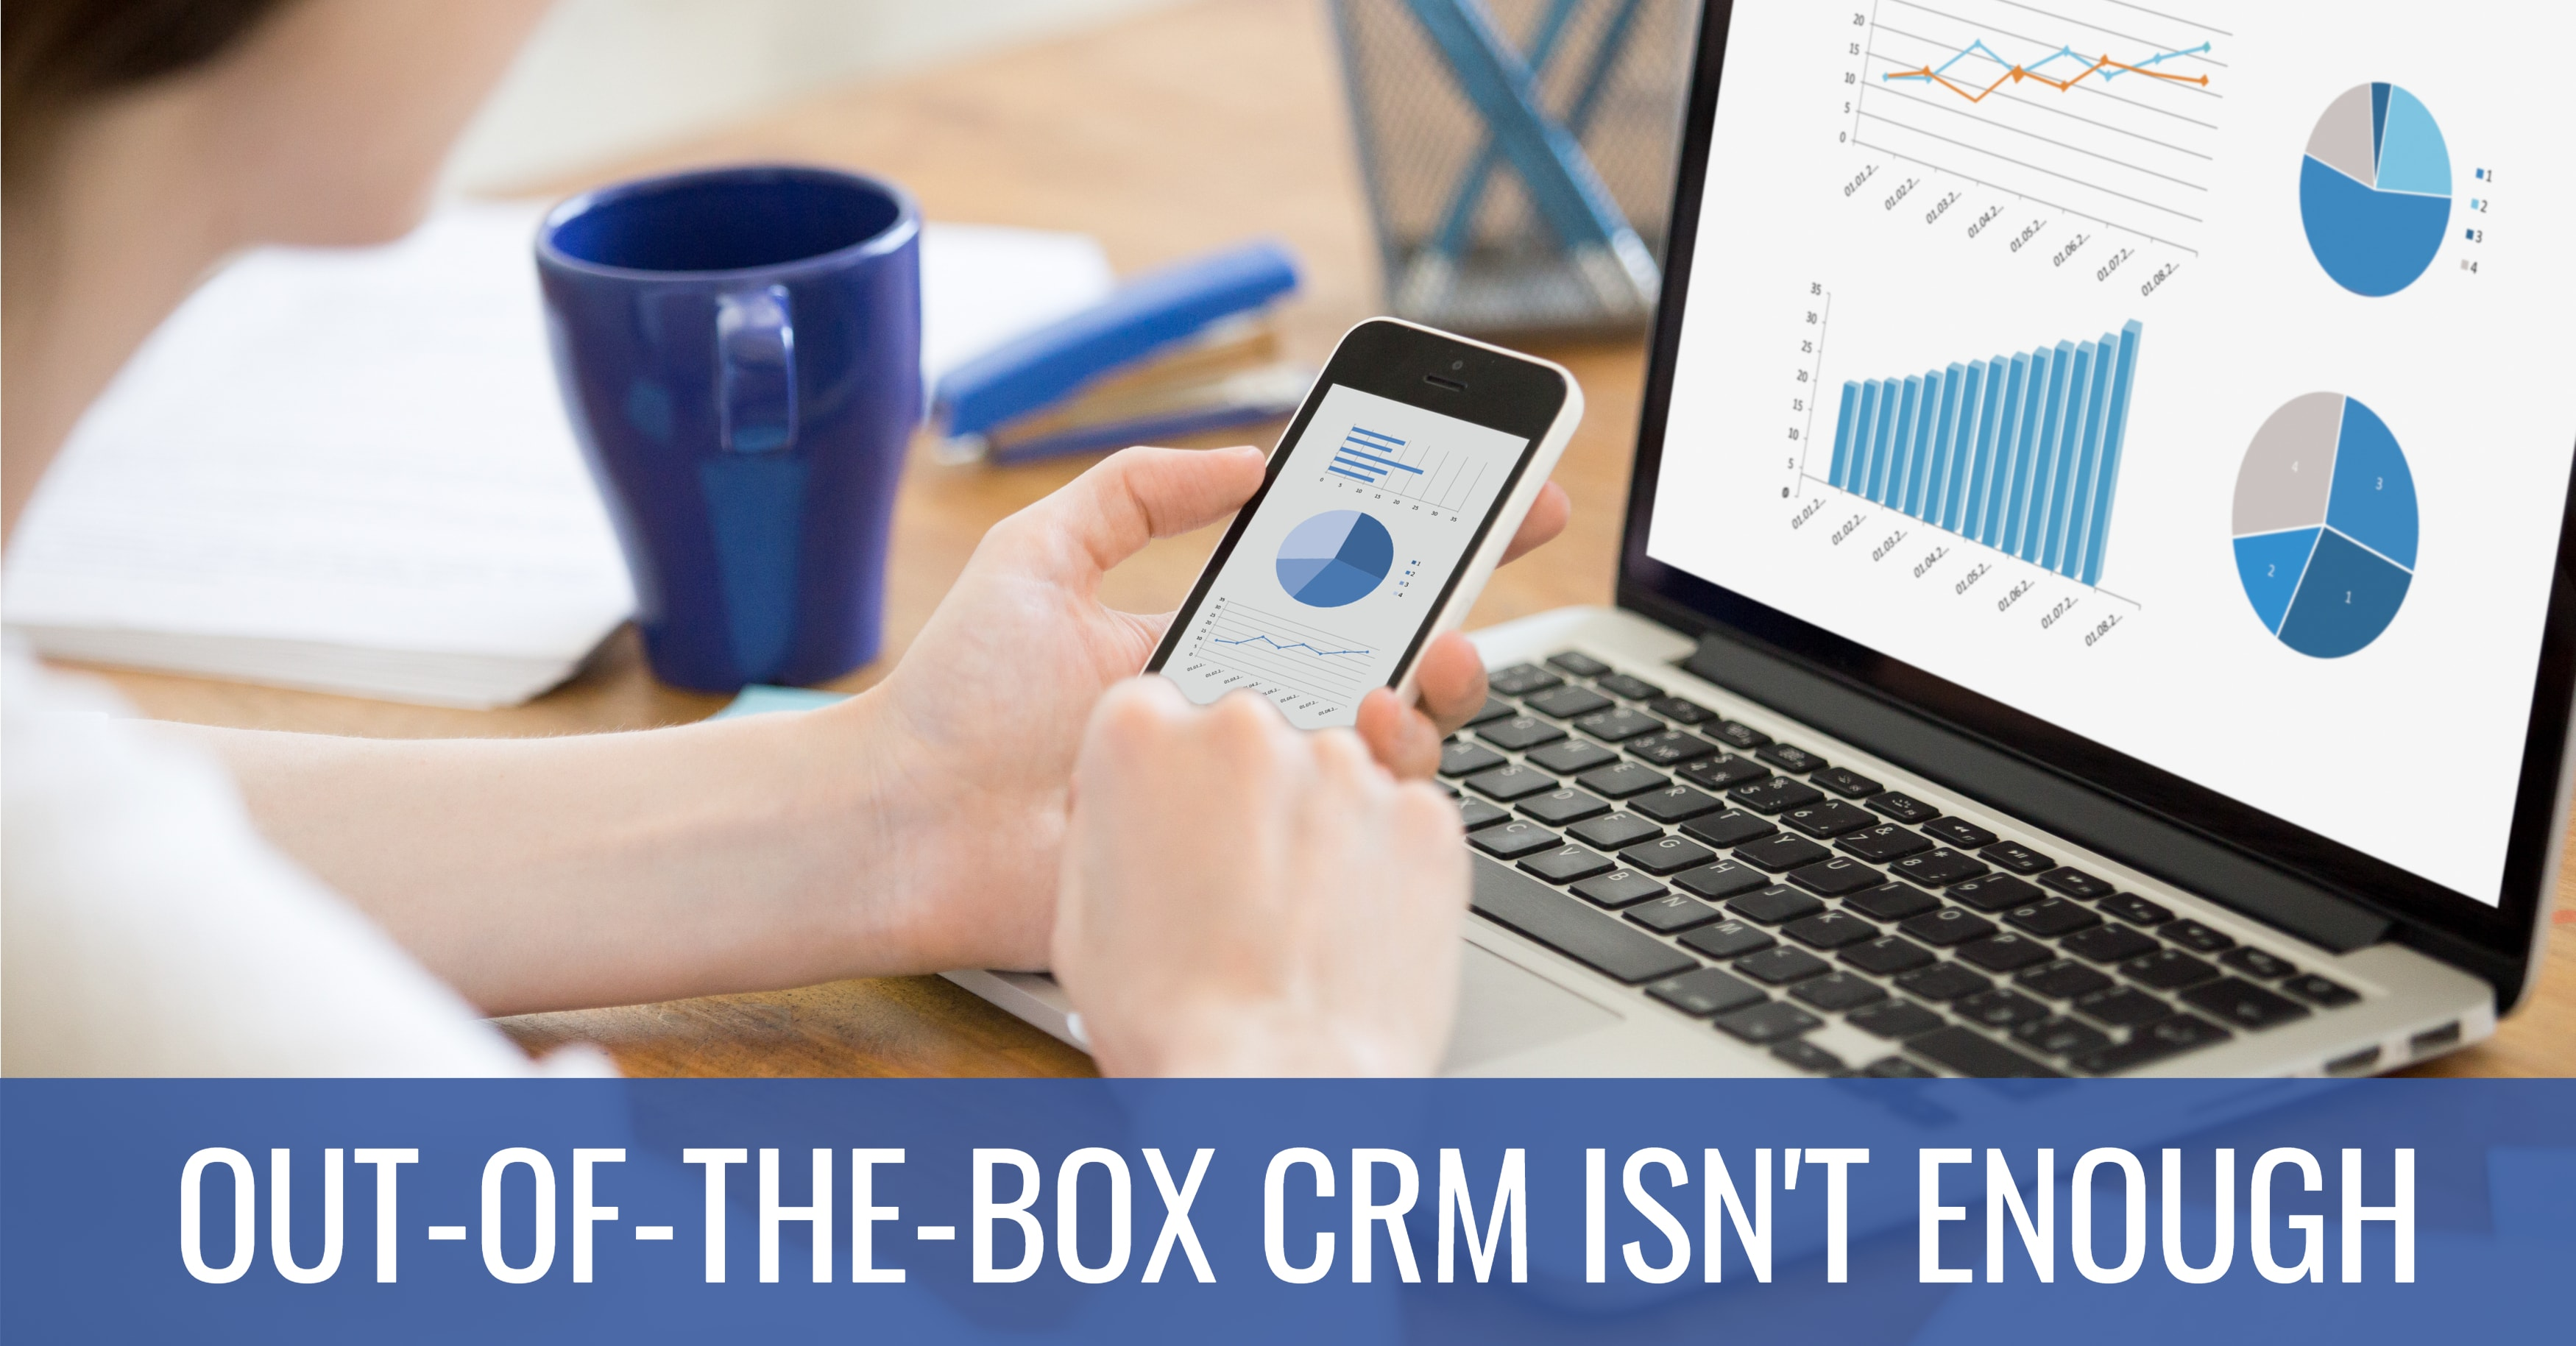 Why Out-of-the-Box CRM Isn't Enough